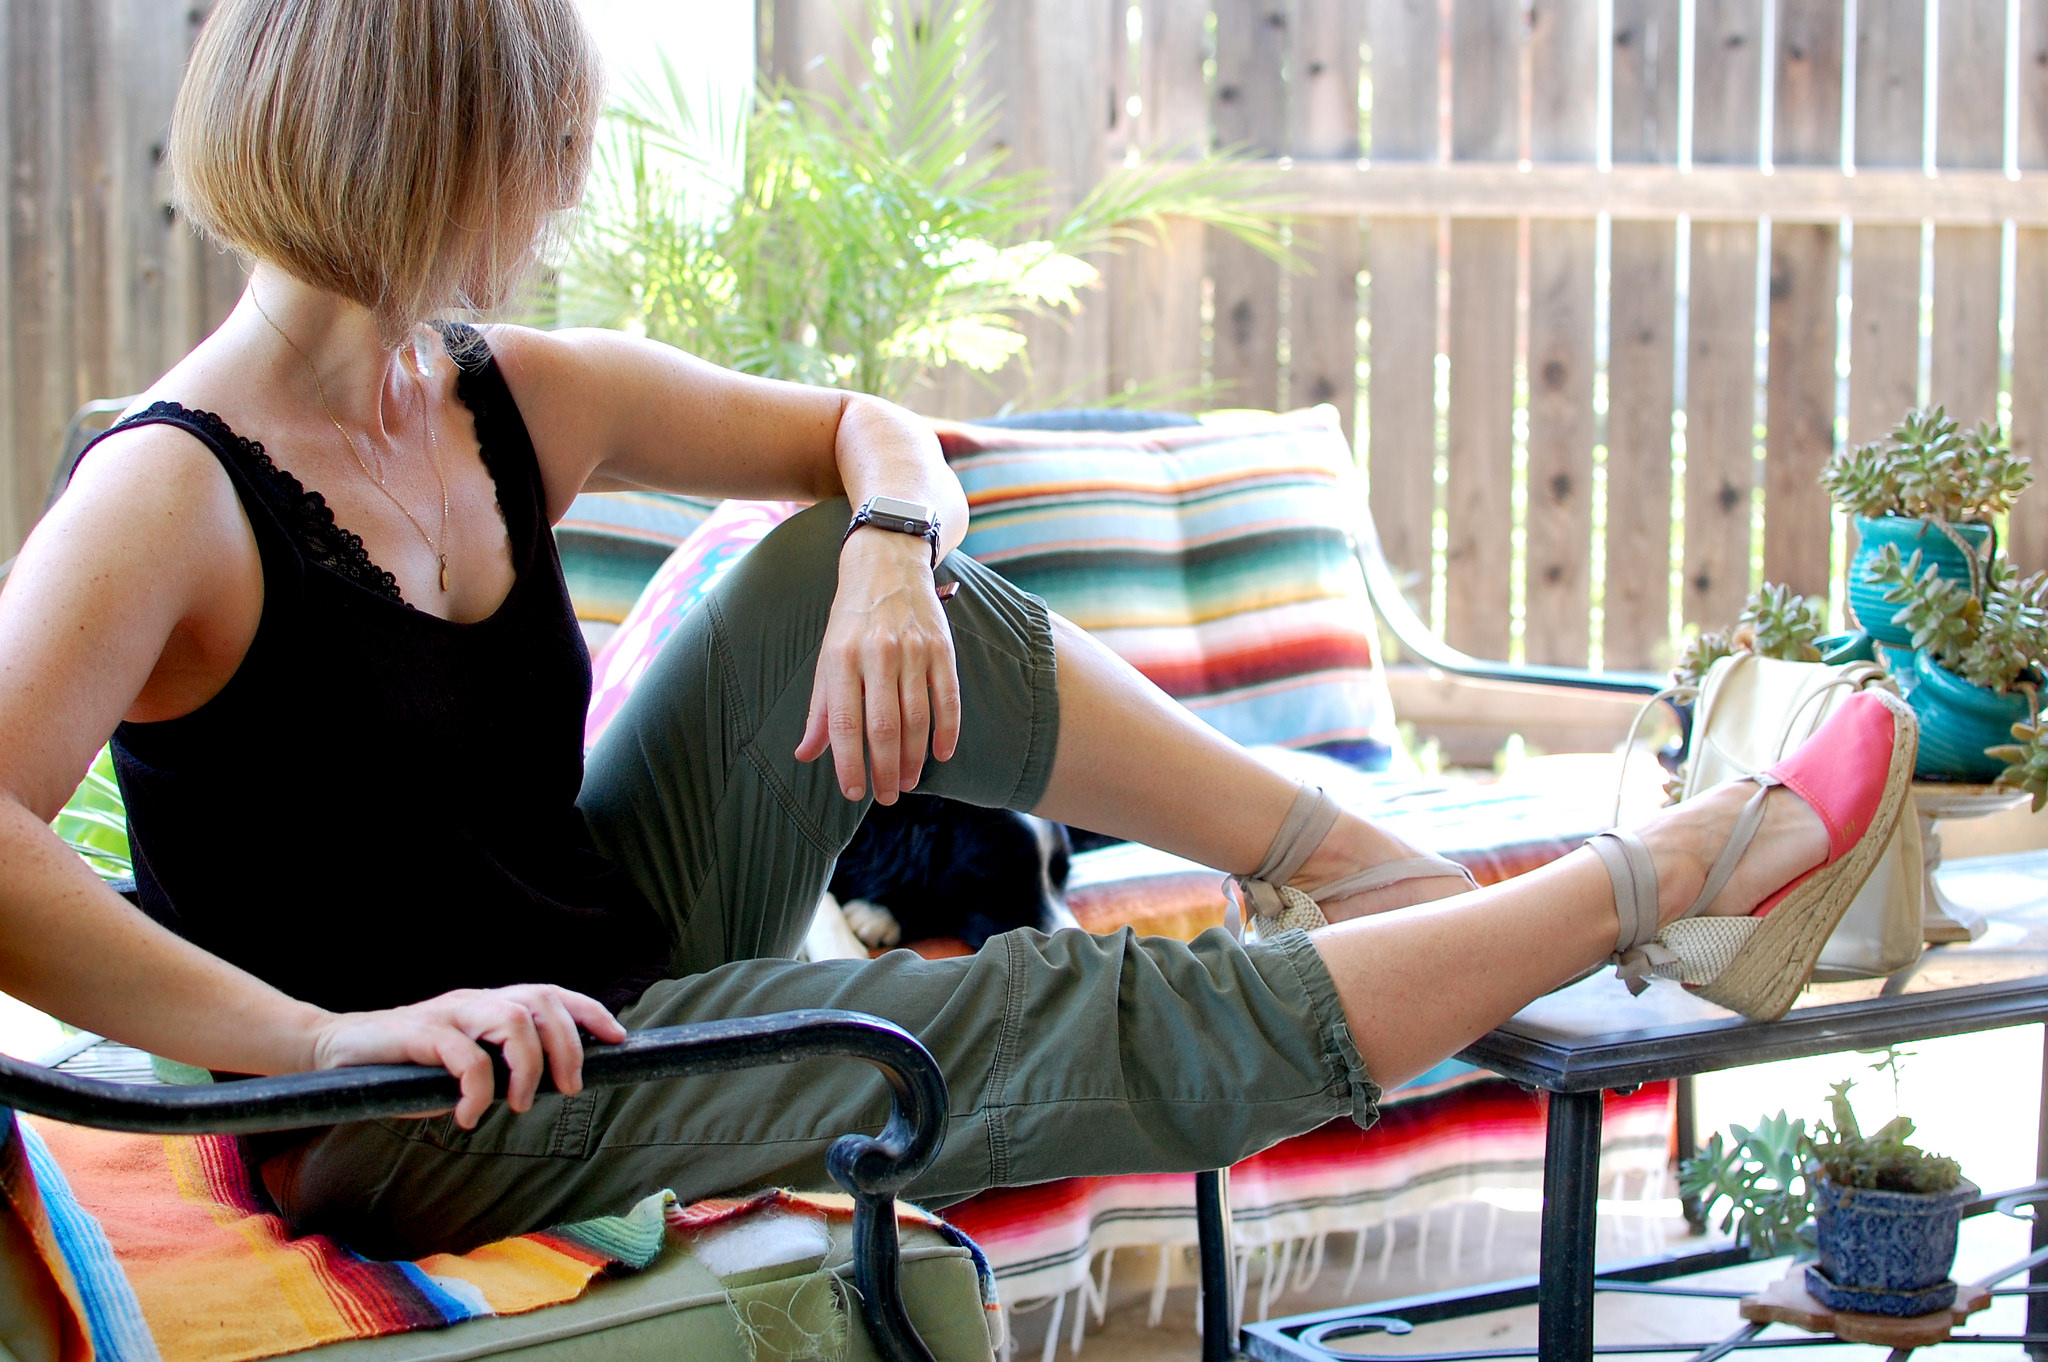 sacramento summer daily outfit style blog ootd whatiwore2day espadrilles wedge